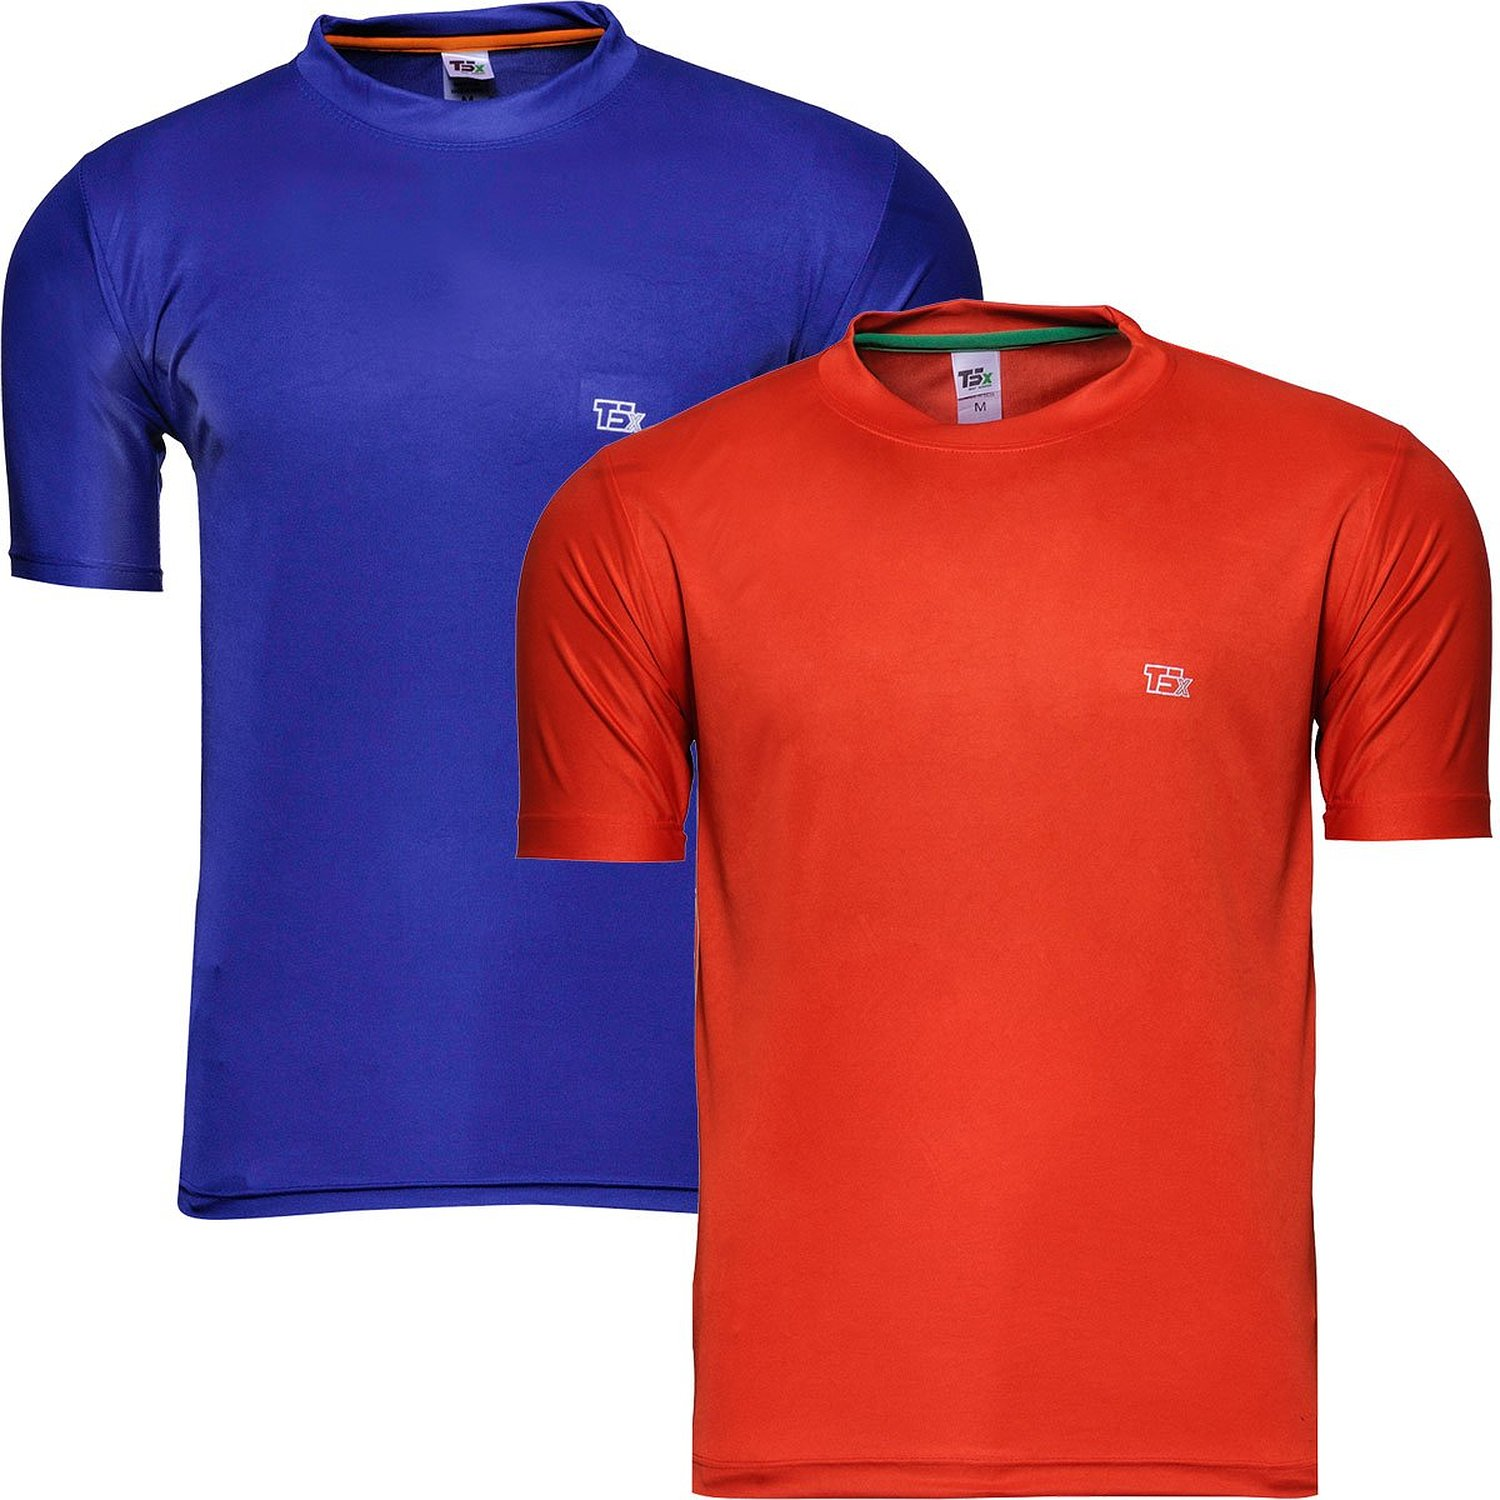 TSX Mens Polos & Tees low price